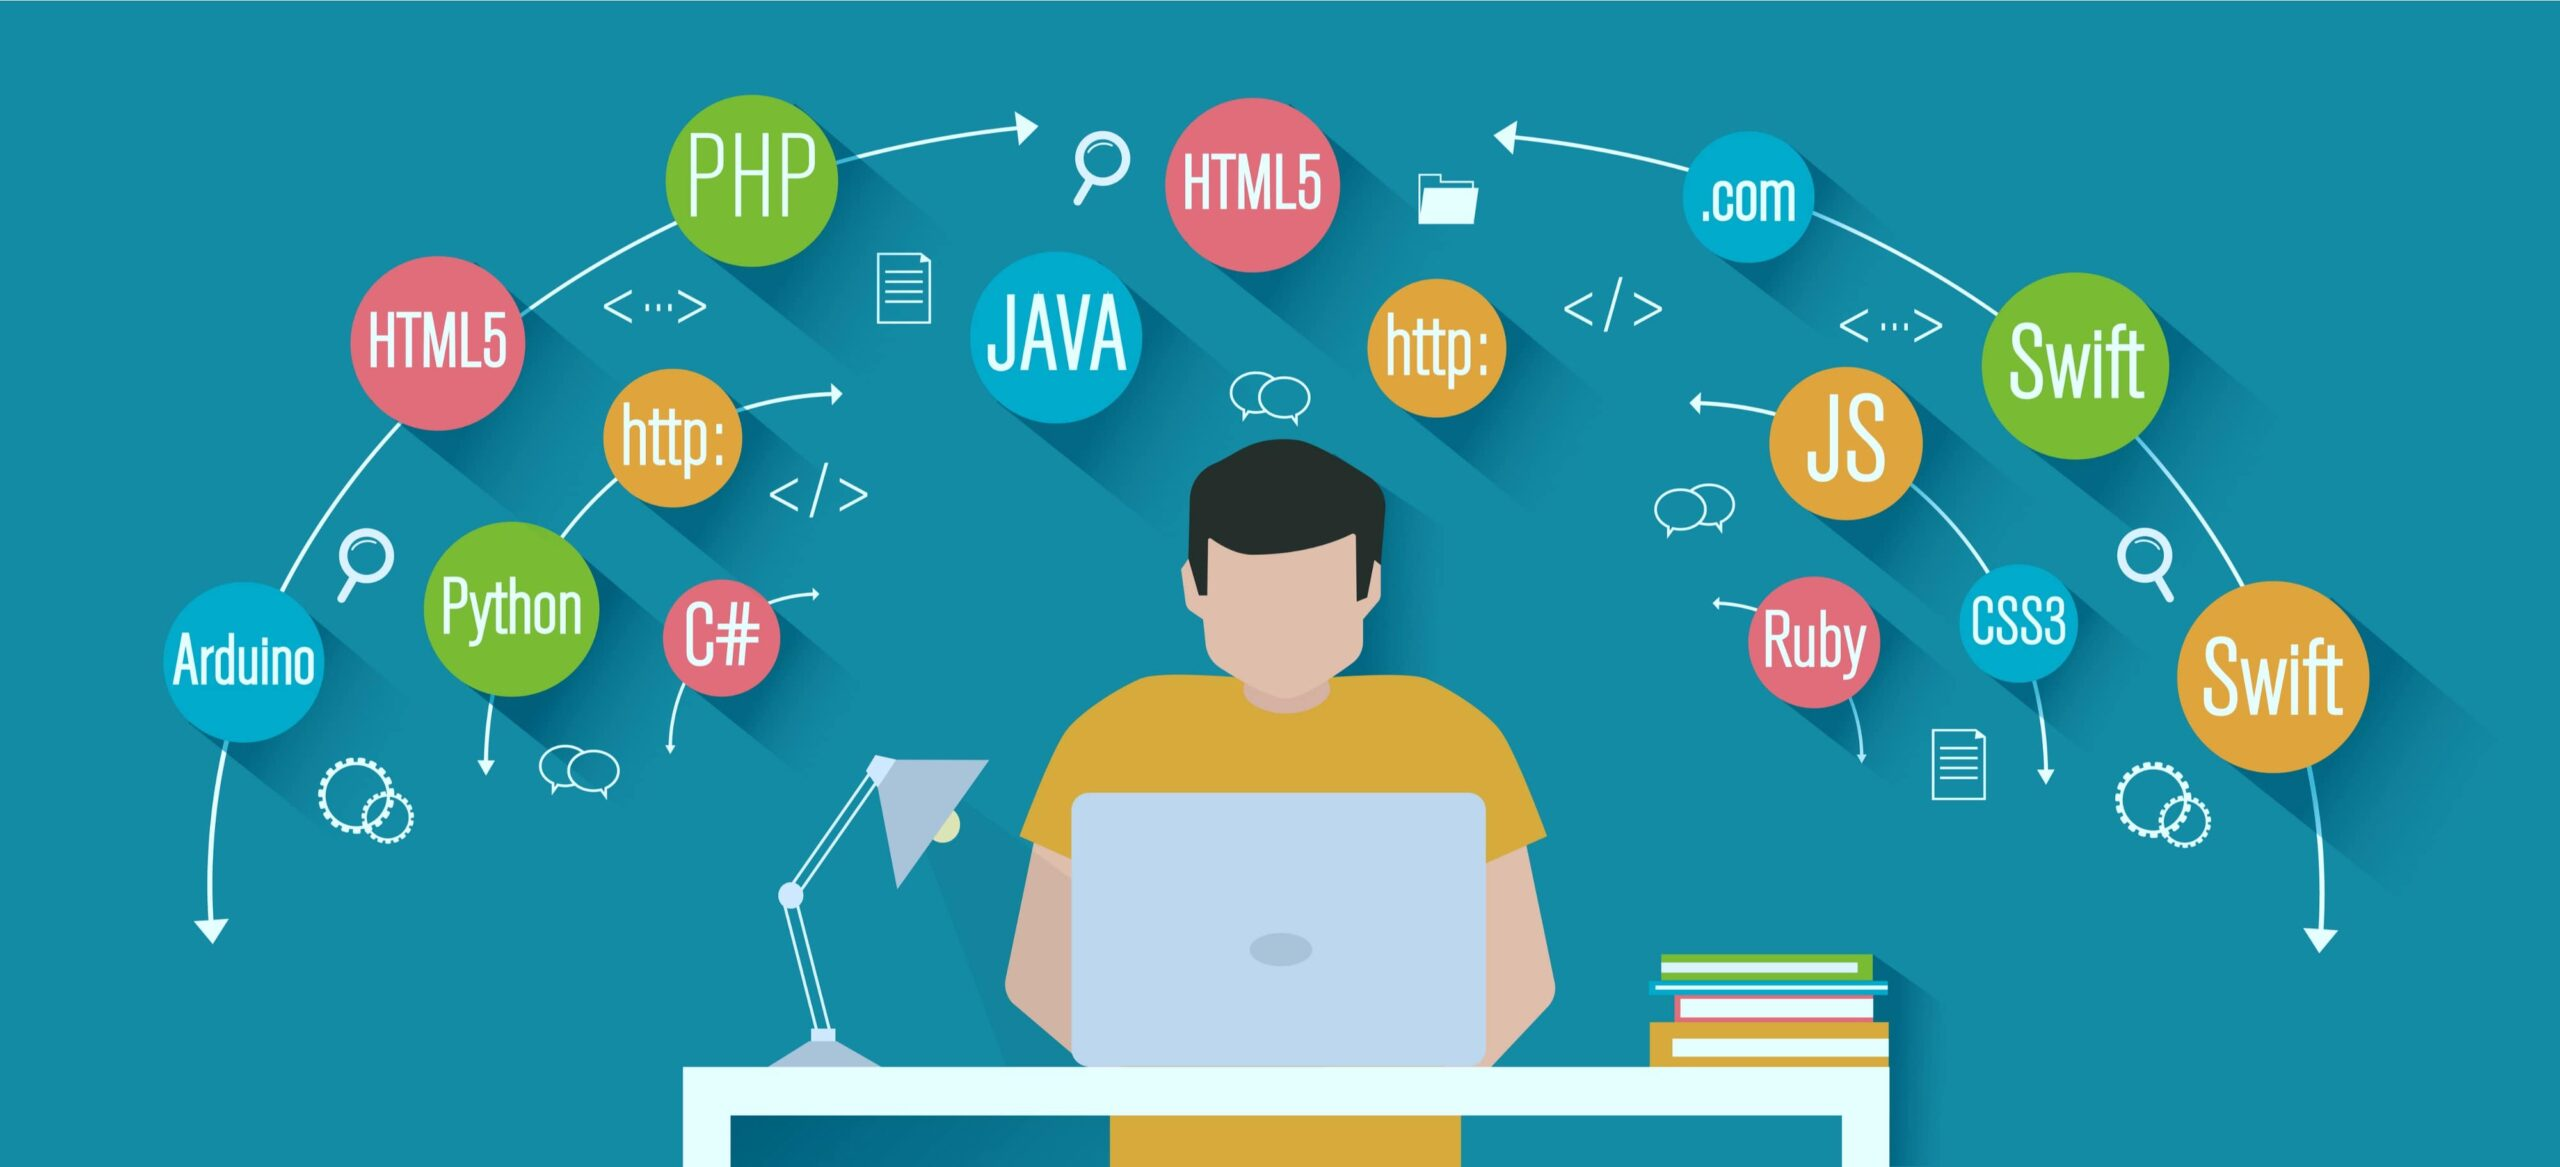 Non-Tecnical Guide to Web Development Languages: Choose The Right One For Your Next Project